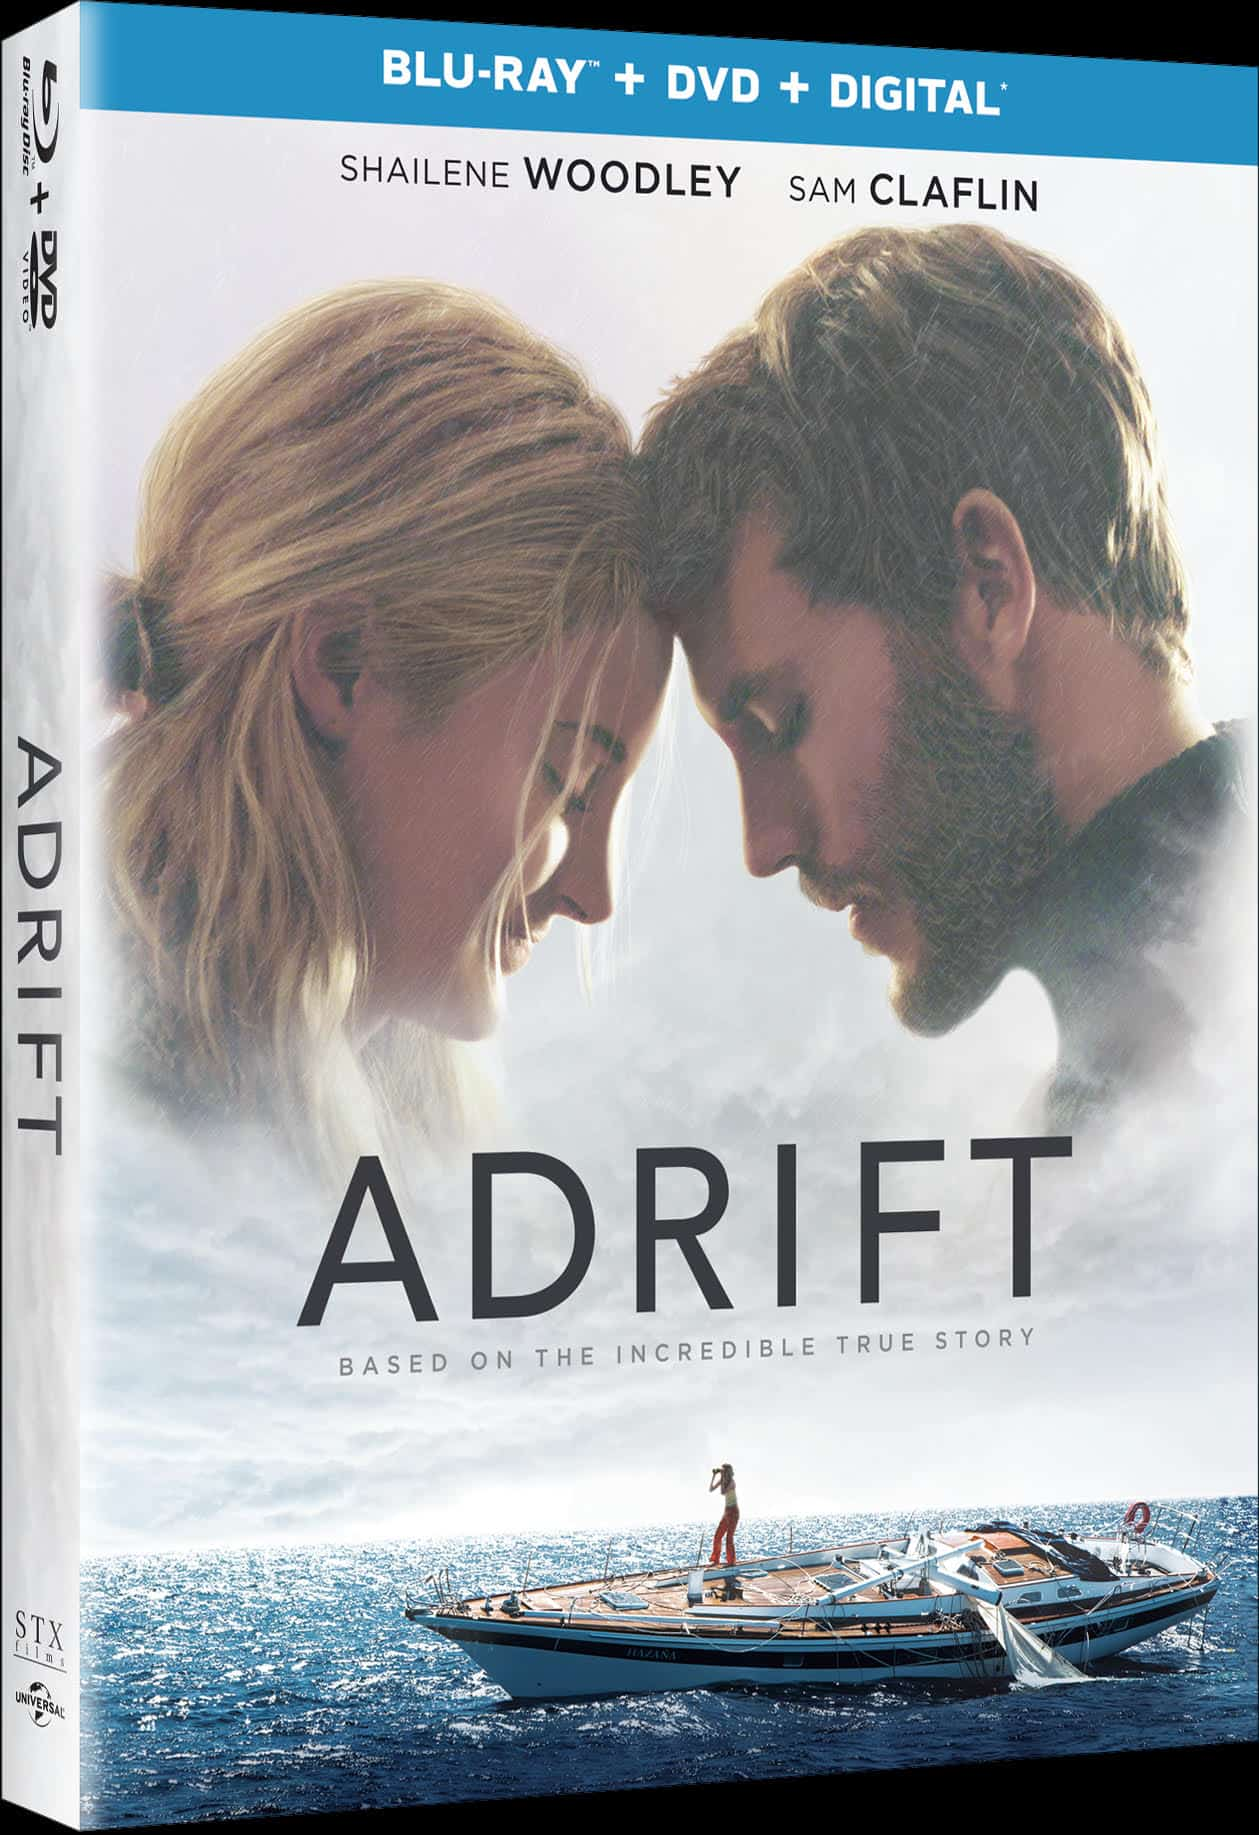 Adrift Now Available on DVD